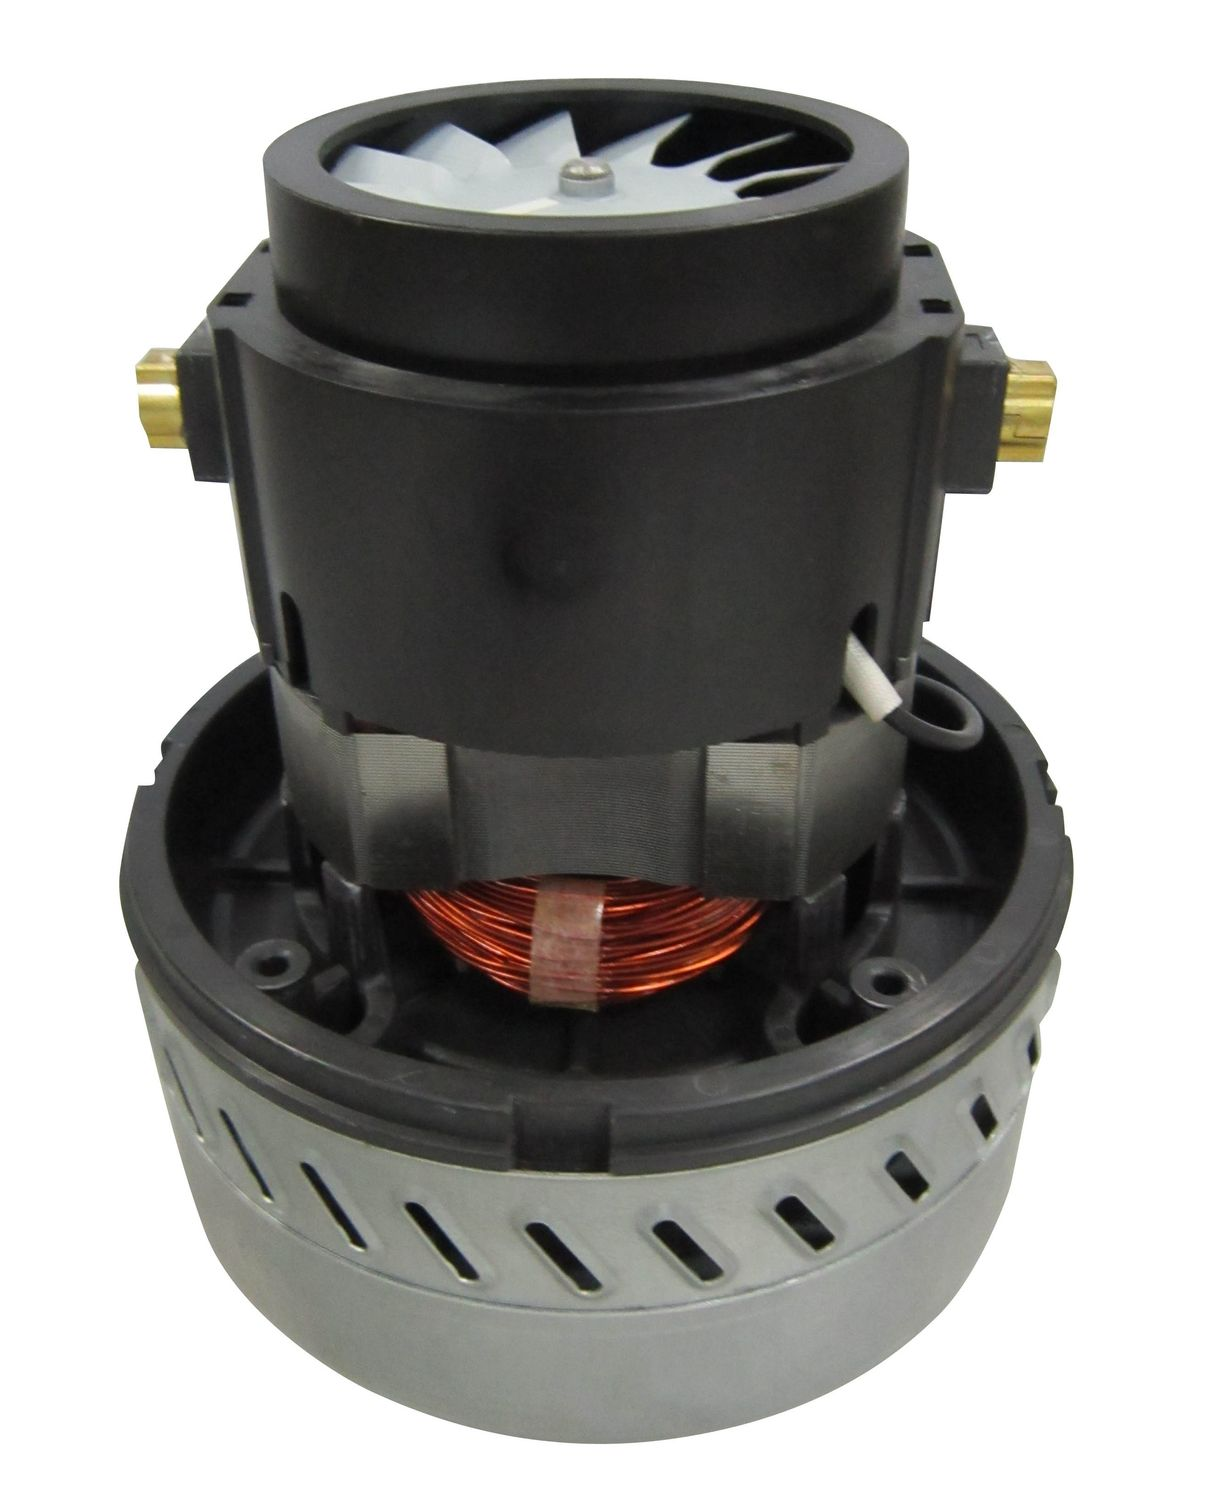 AC motor / universal / 220 V / high-speed - V1 series